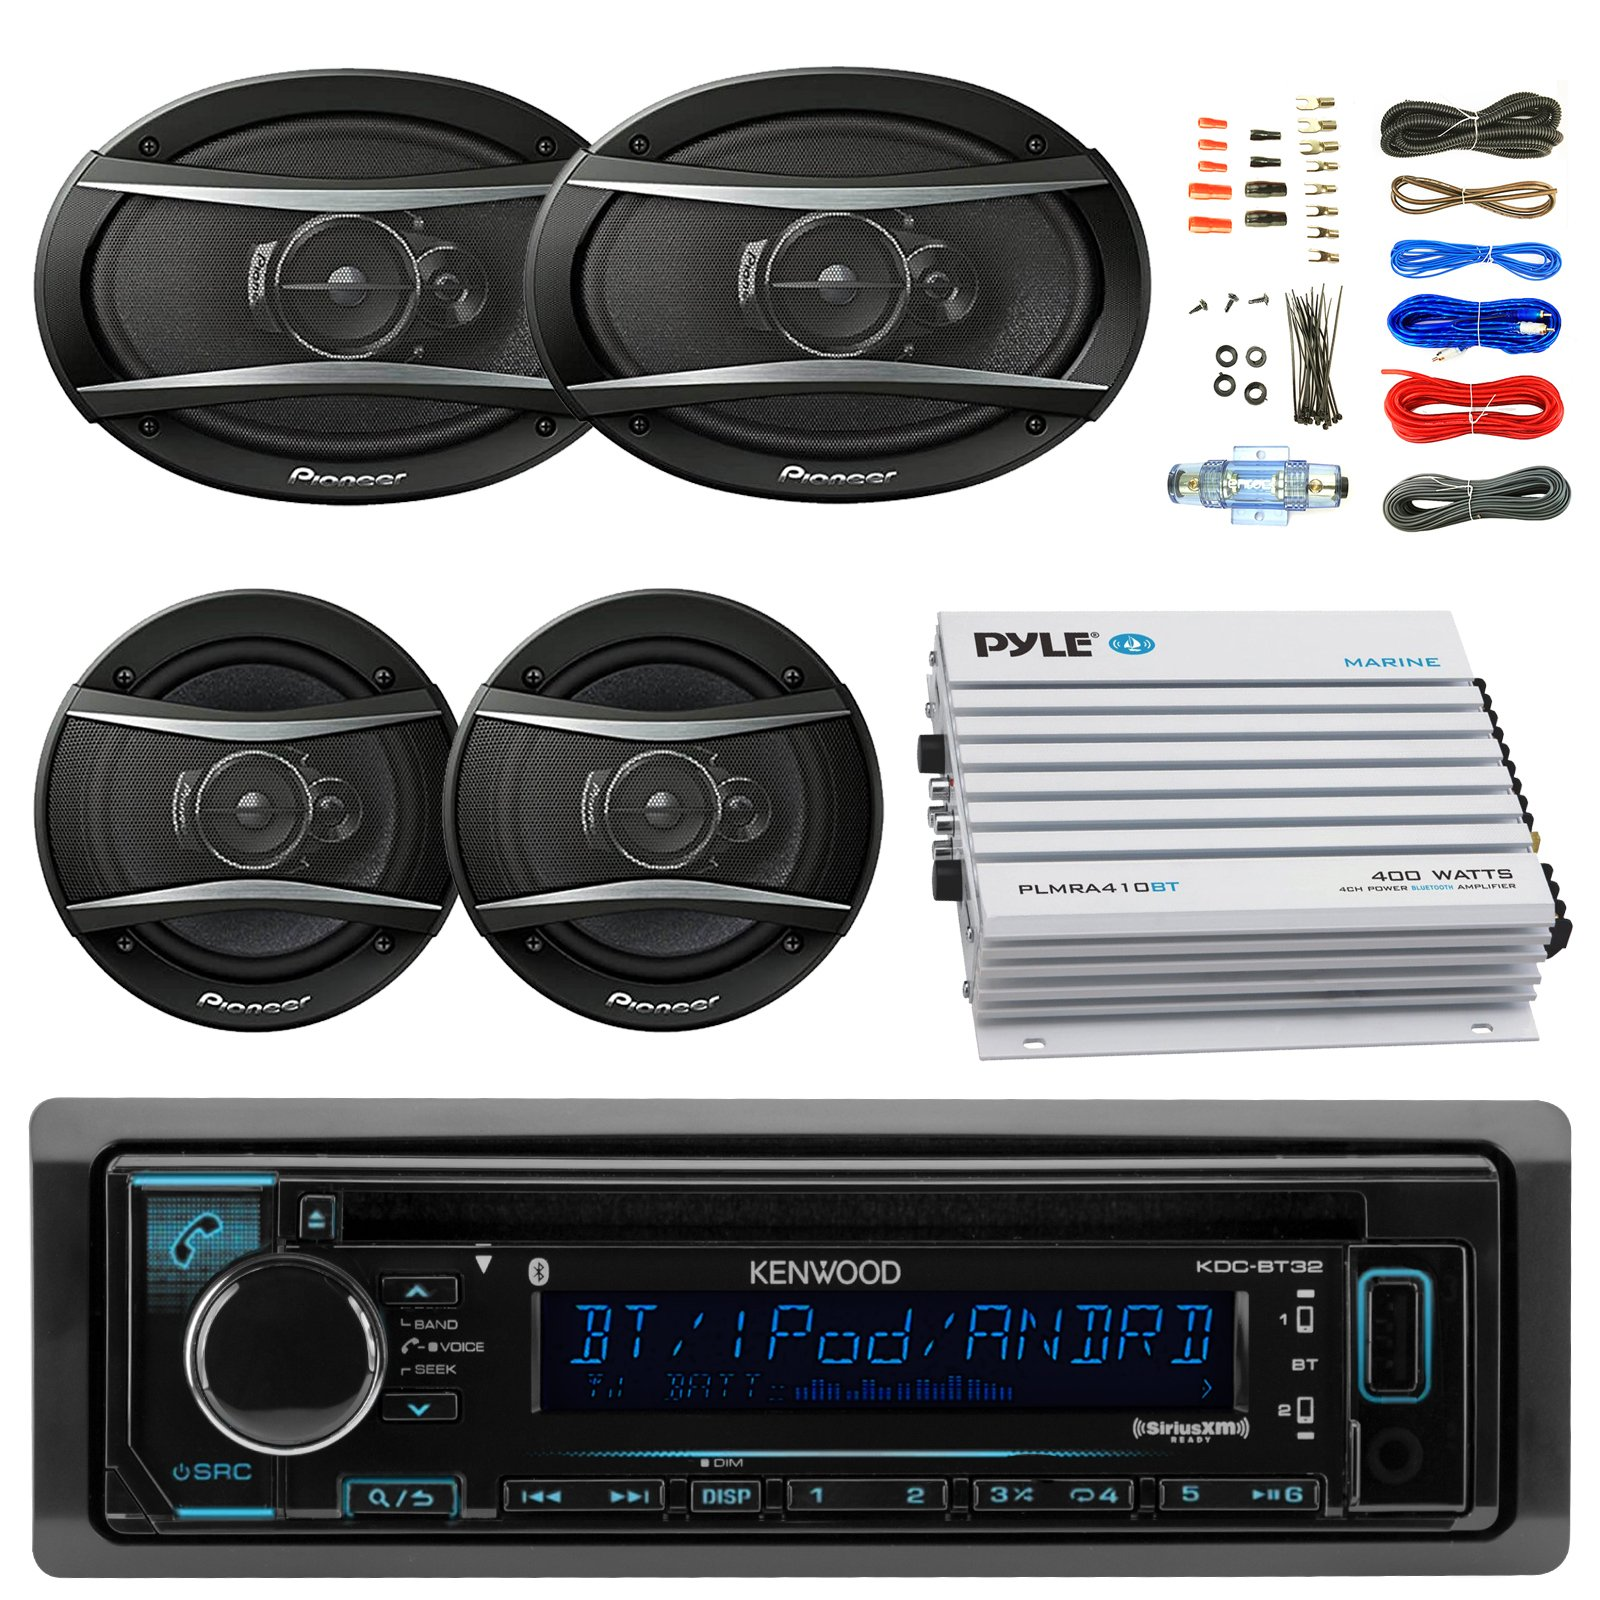 Kenwood KDCBT32 Car Bluetooth Radio USB AUX CD Player Receiver - Bundle With 2x TSA1676R 6.5'' 3-Way Car Audio Speakers - 2x 6.5''-6.75'' 4-Way Stereo Speaker + 4-Channel Amplifier + Amp Kit